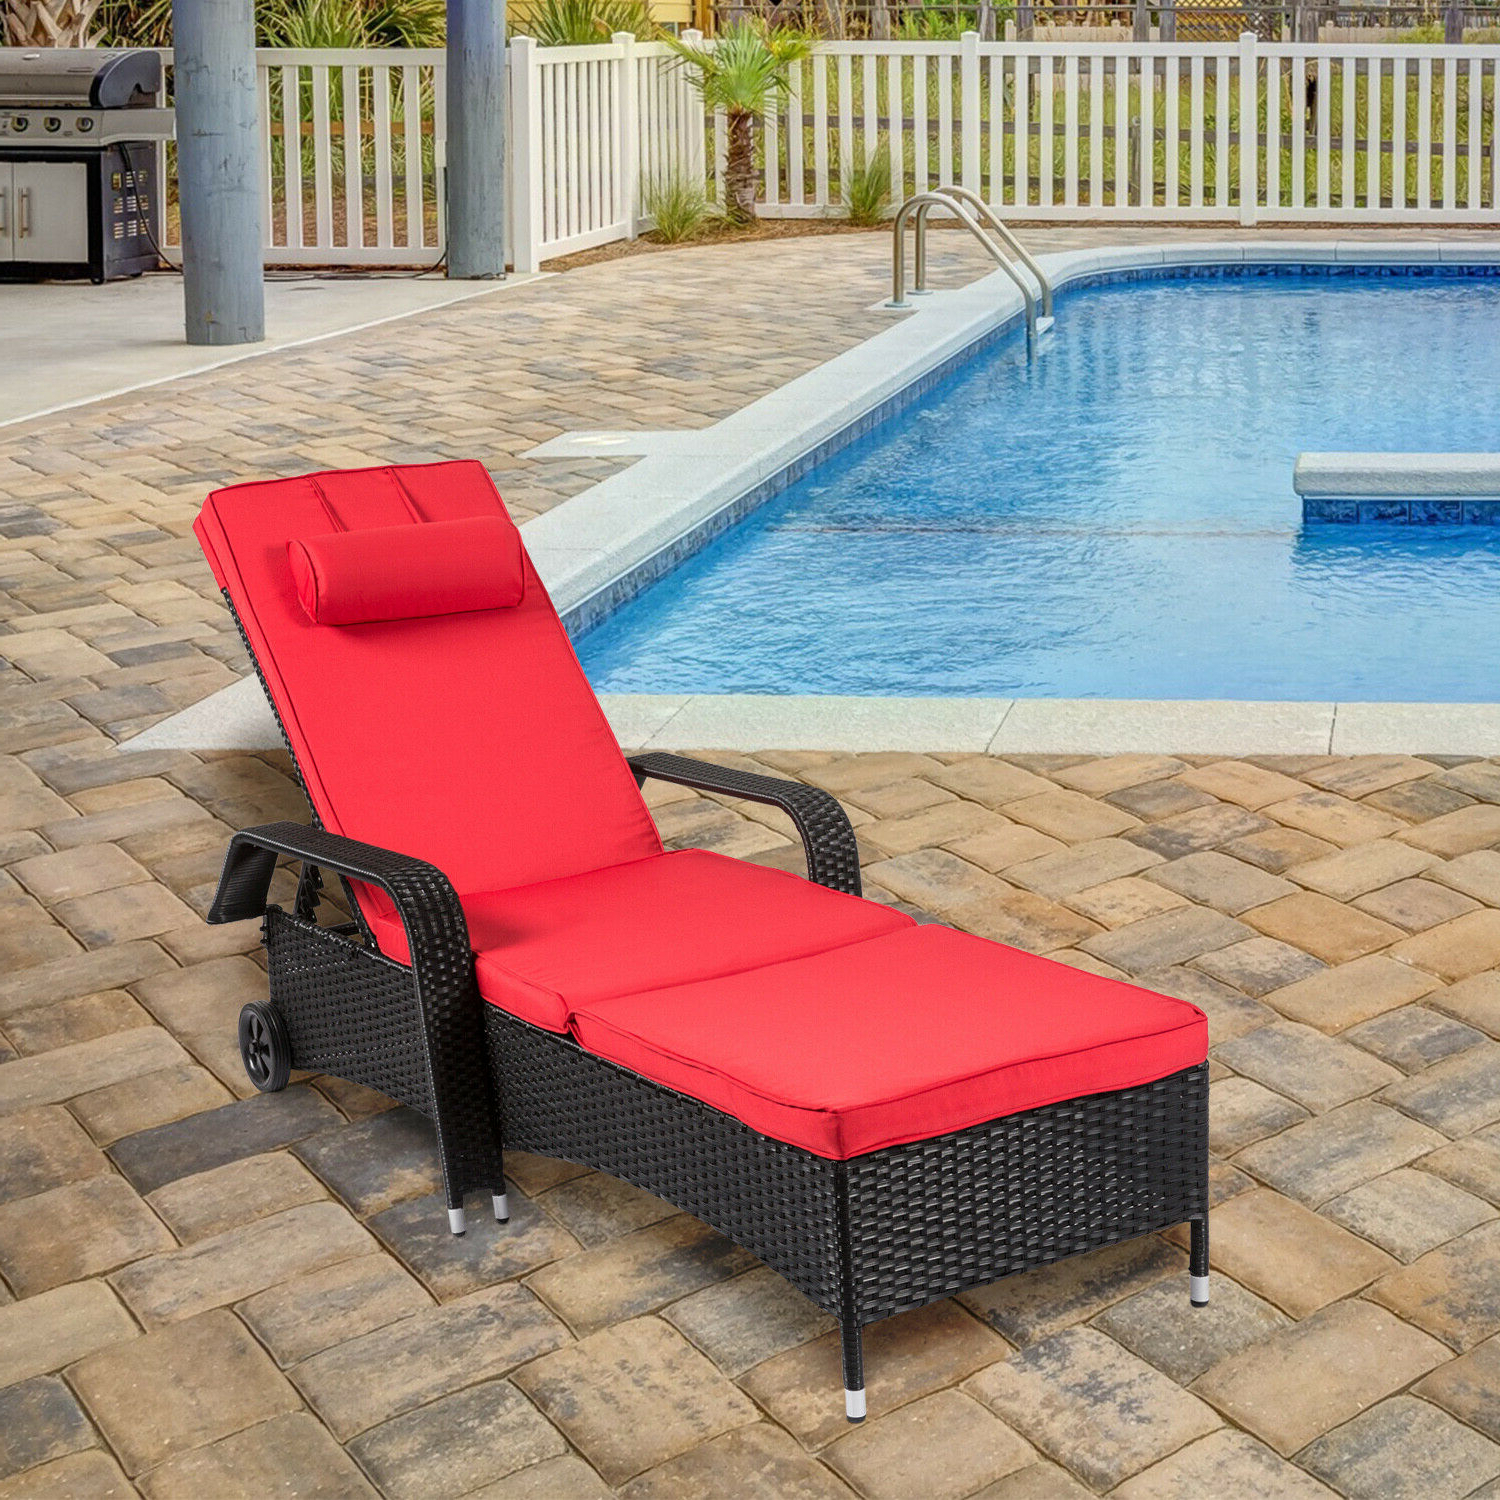 Well Liked Patio Rattan Wicker Chaise Lounge Recliner Adjustable Couch Chair Cushion Wheels Intended For Outdoor Adjustable Rattan Wicker Recliner Chairs With Cushion (Gallery 22 of 25)